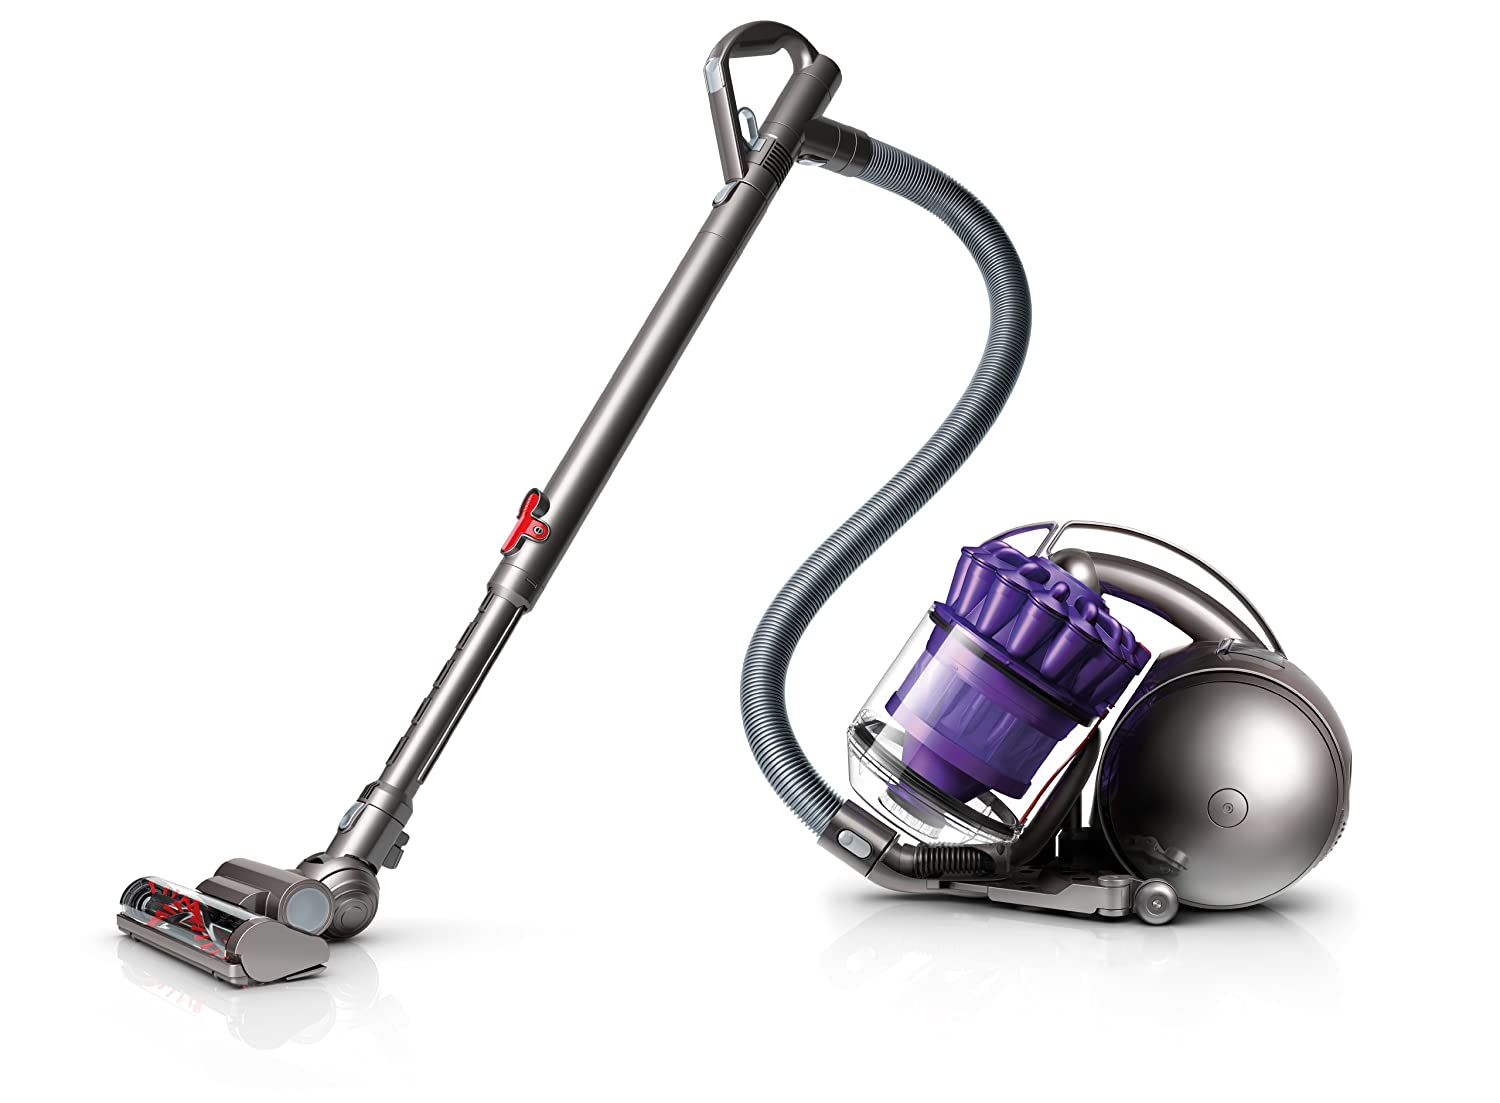 The Dyson DC39 Animal is a Canister vacuum. It doesn't take up much space and removes pet hair very easily.